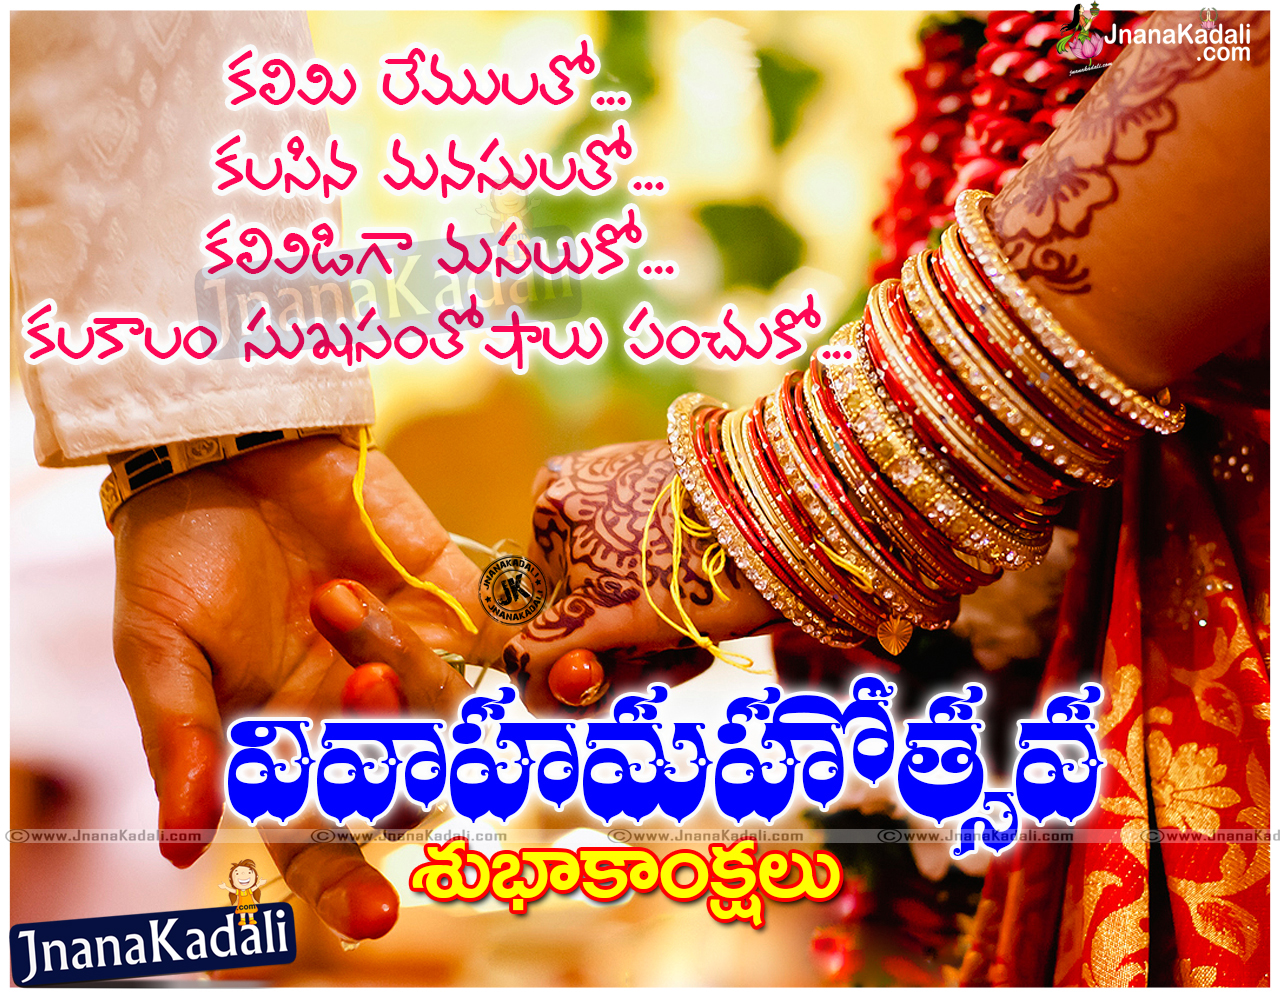 Happy Marriage Day Greetings In Telugu With Marriage Kavithalu